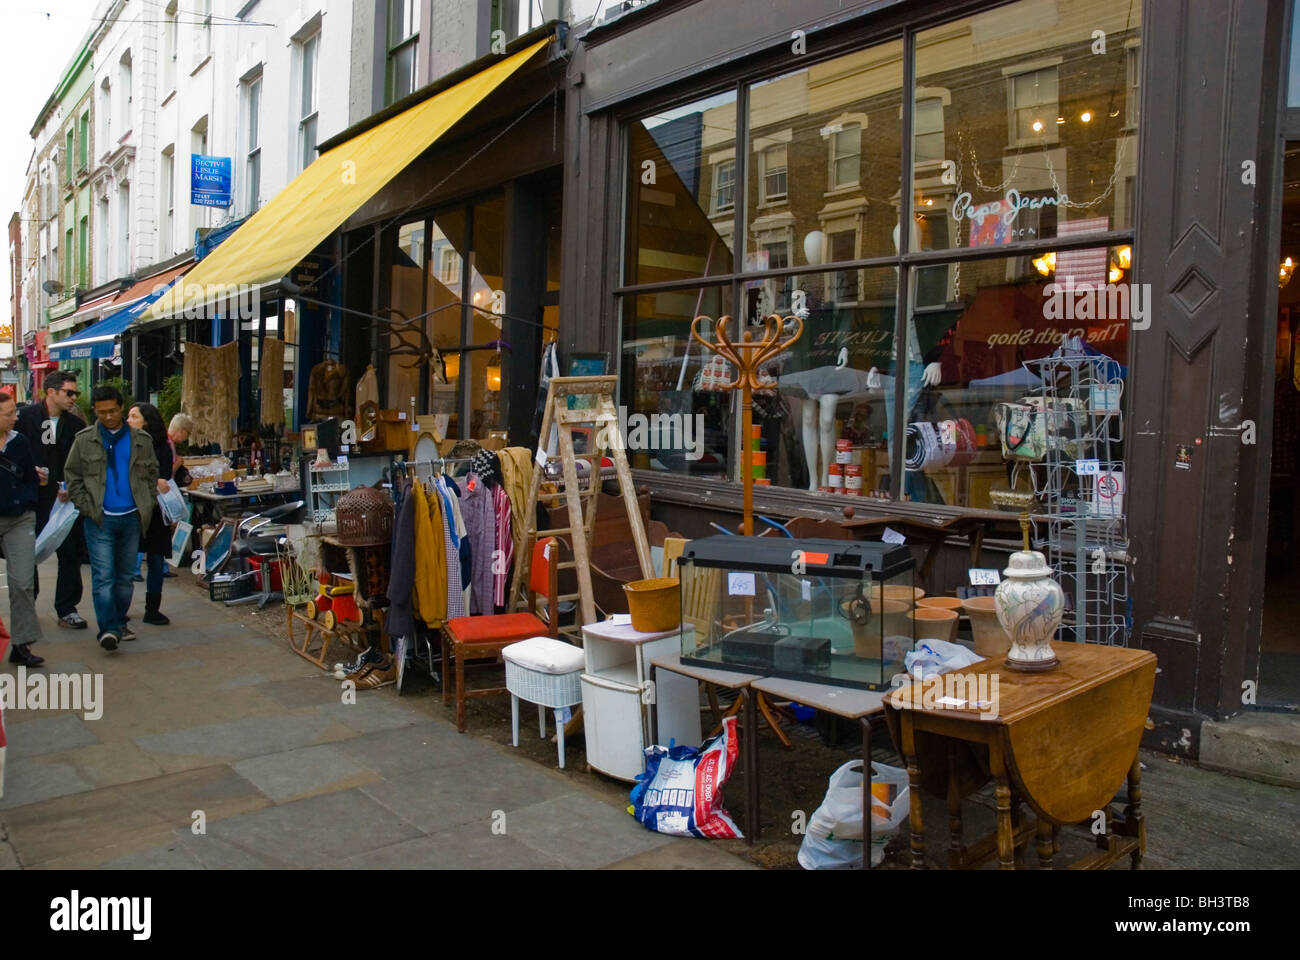 Second Hand Furniture Store Portobello Road Market London England UK Europe    Stock Image